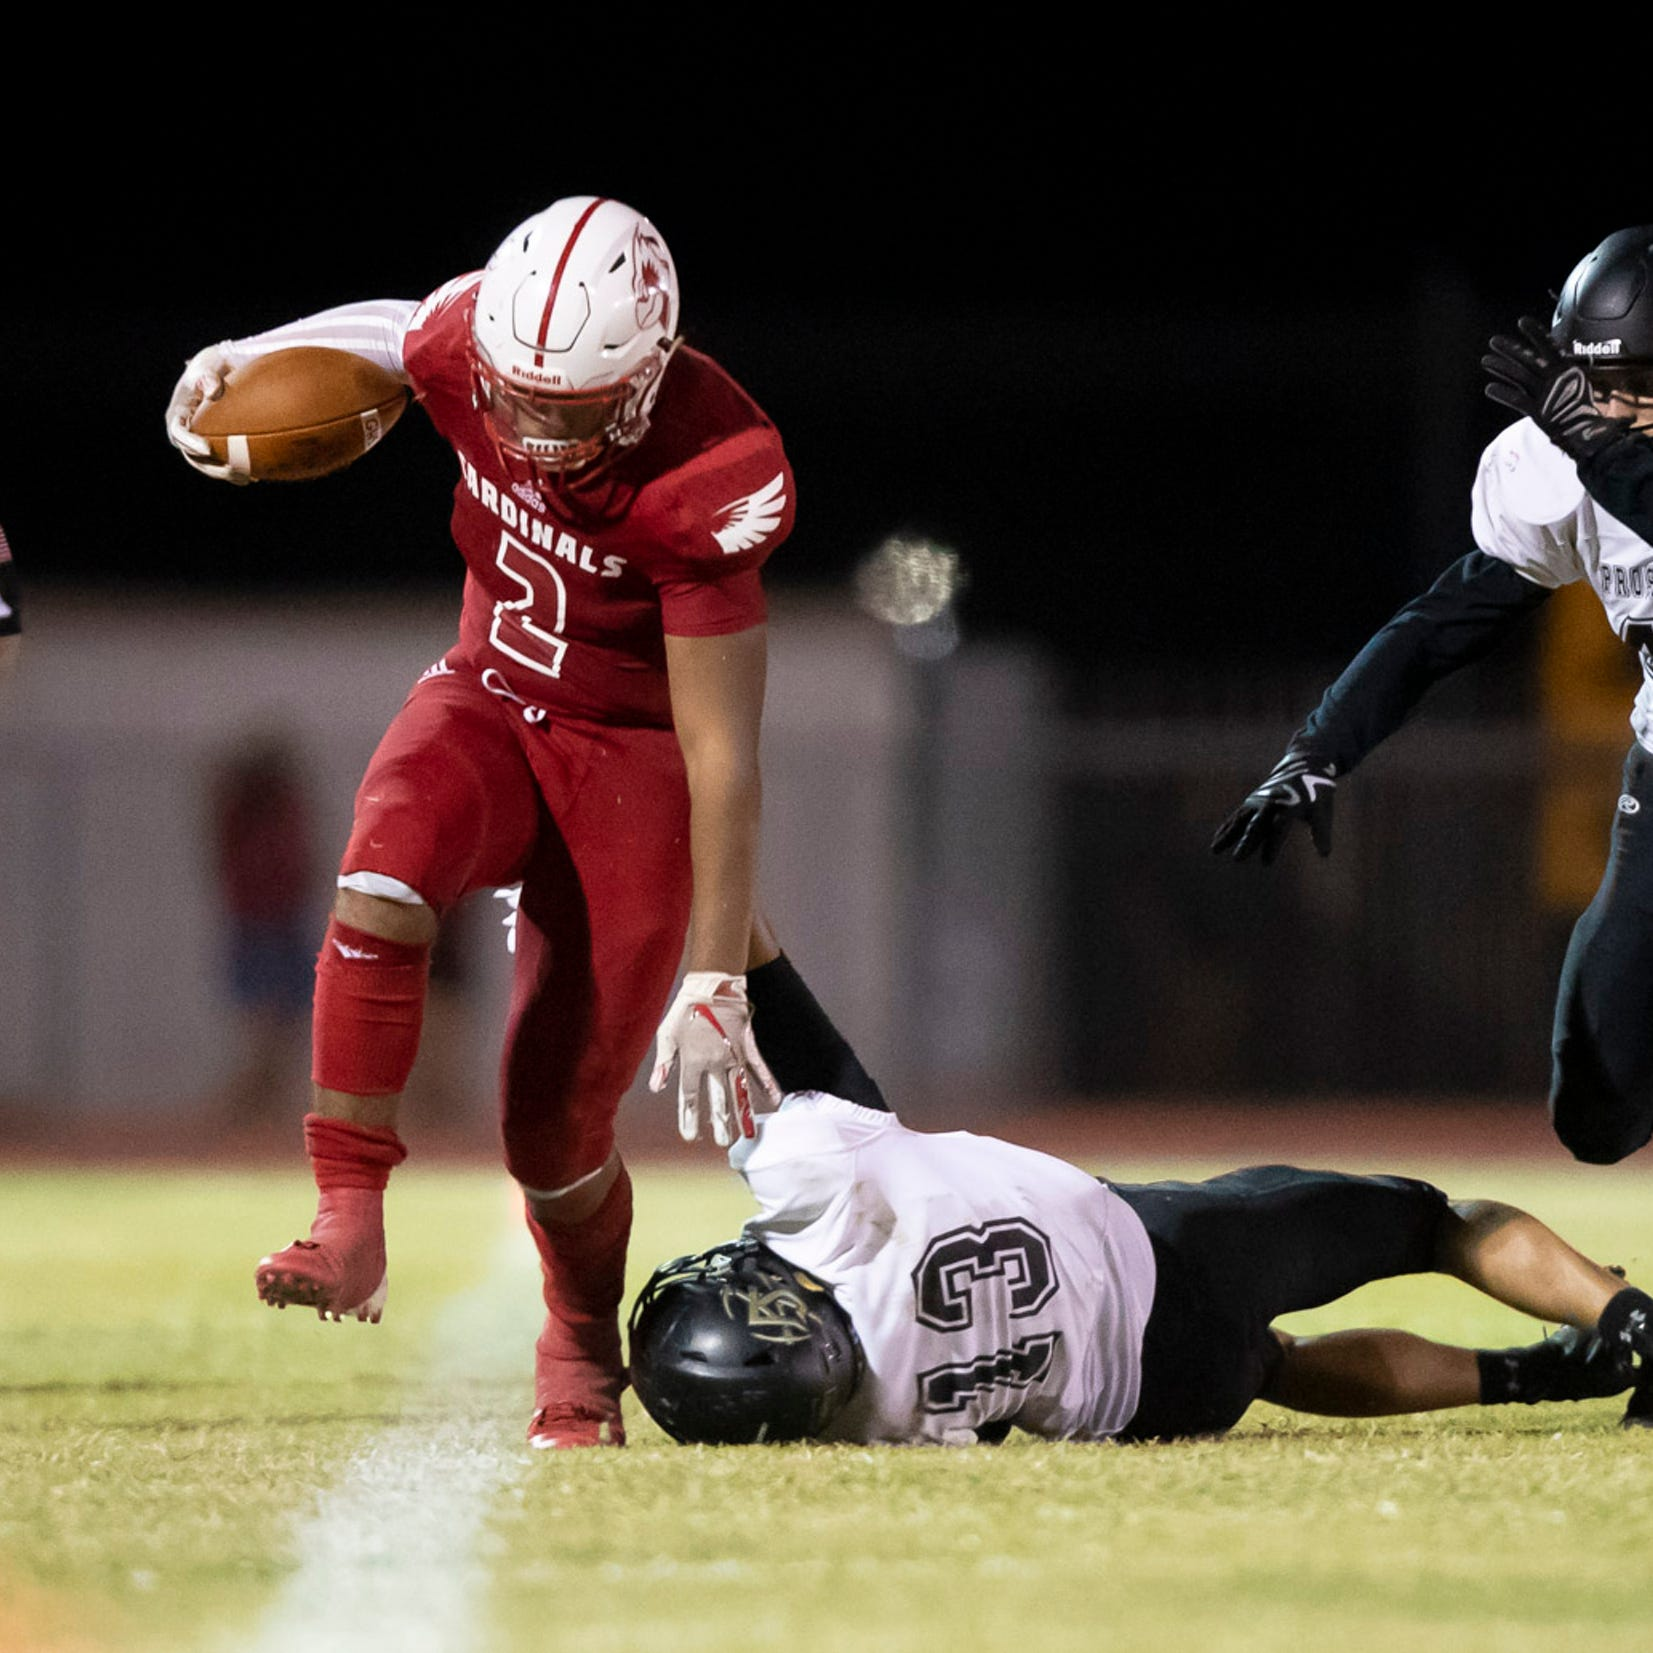 Vote for the Week 10 Top Performer in Arizona high school football